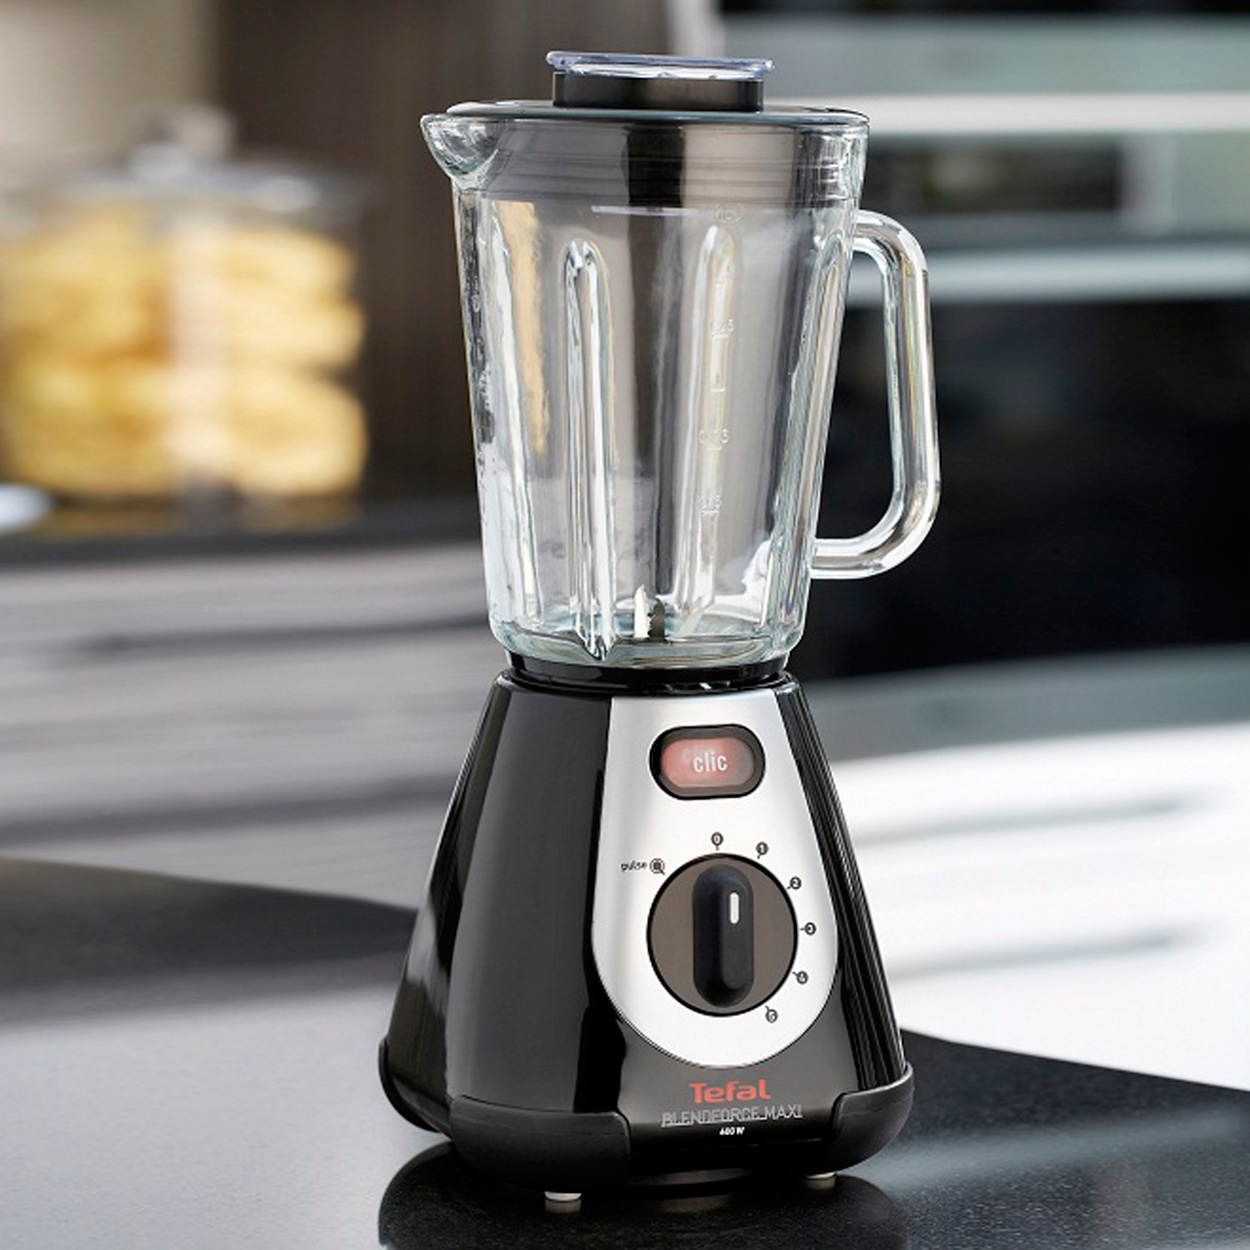 Uncategorized Debenhams Kitchen Appliances tefal black blendforce maxi blender bl233865 debenhams debenhams